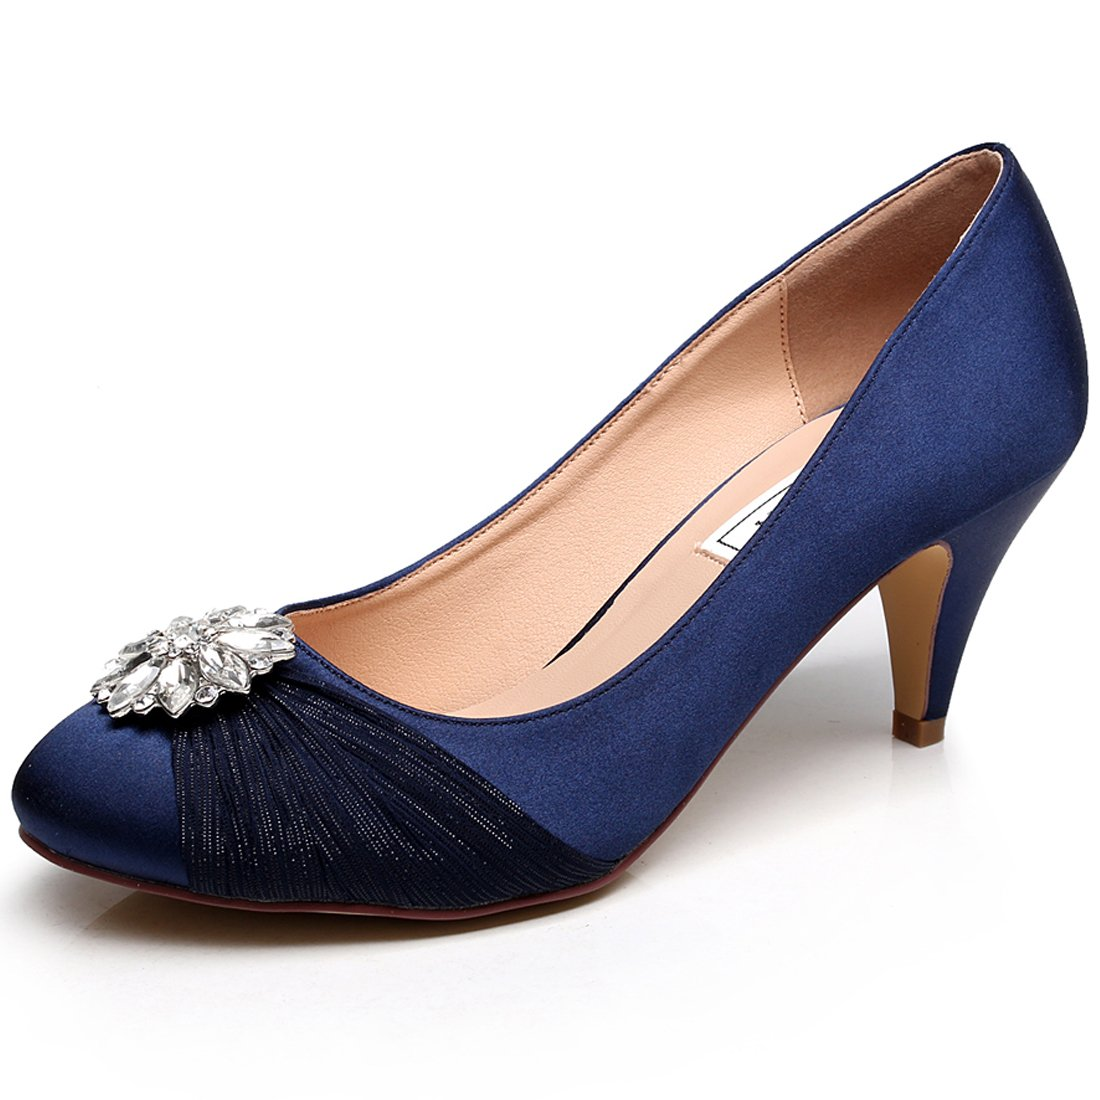 LUXVEER Satin Women Shoes Wedding Shoes with Rhinestone Bridal Shoes Low Heel Closed Toe Lace Wedding Shoes - Heels 2 inch-RS-9810-Dark Blue-EU38 Wedding Shoes by LUXVEER